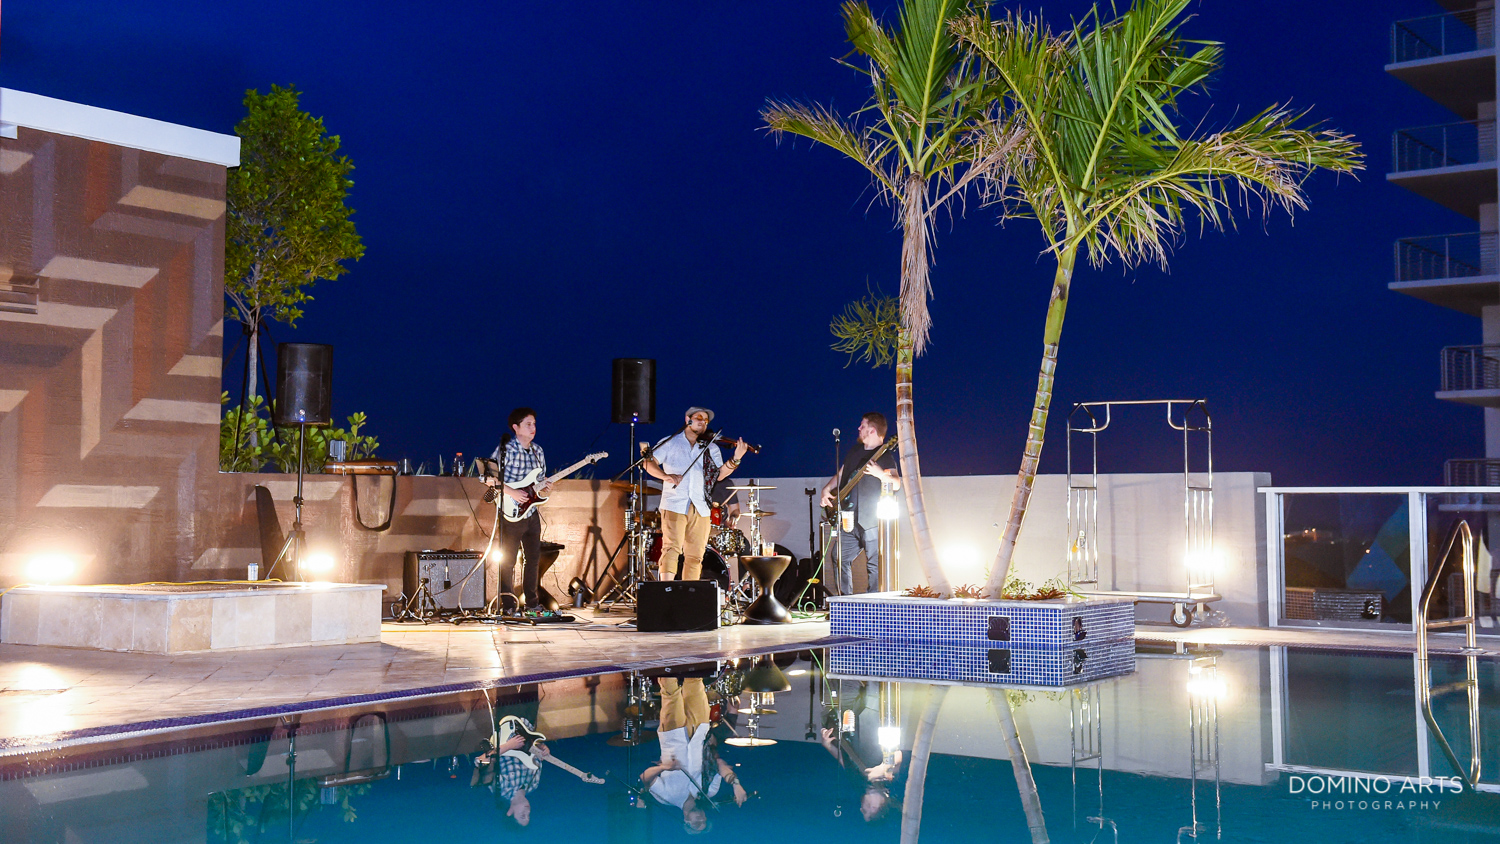 Musicians and Pool balcony with amazing views at Circ Hotel Grand Opening Corporate Event in Hollywood, Florida